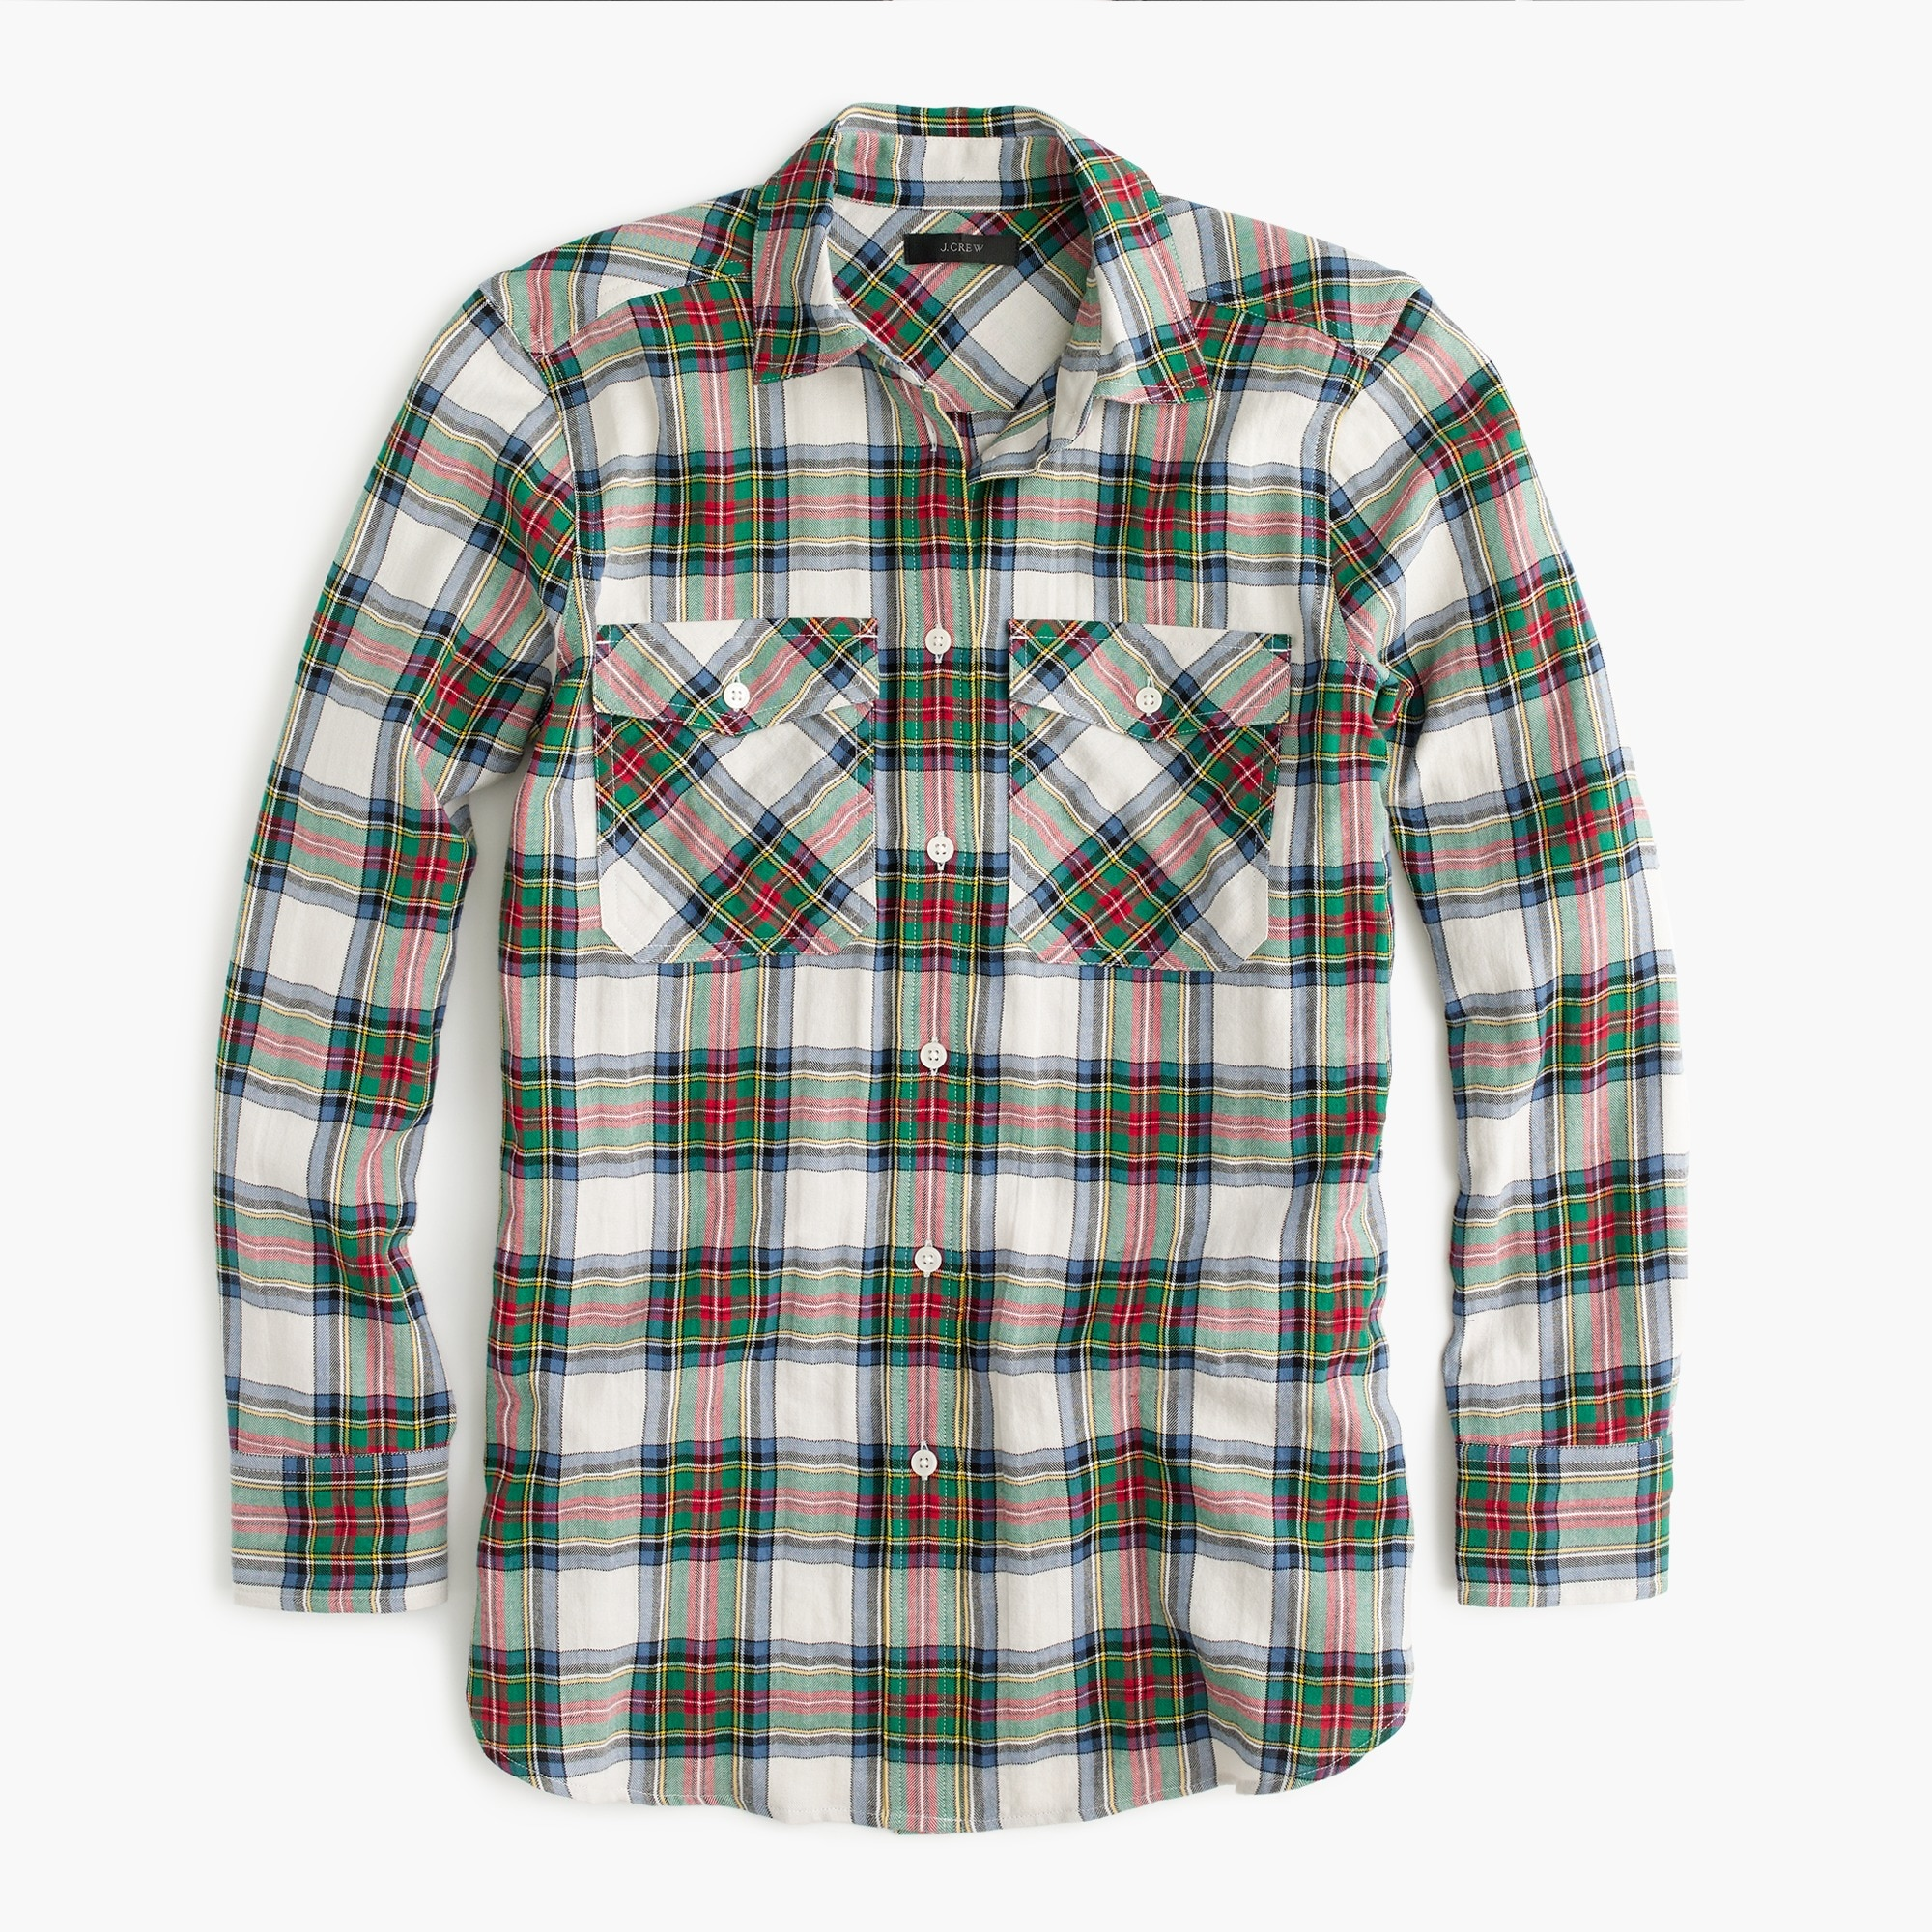 Oversized button-up shirt in Stewart tartan